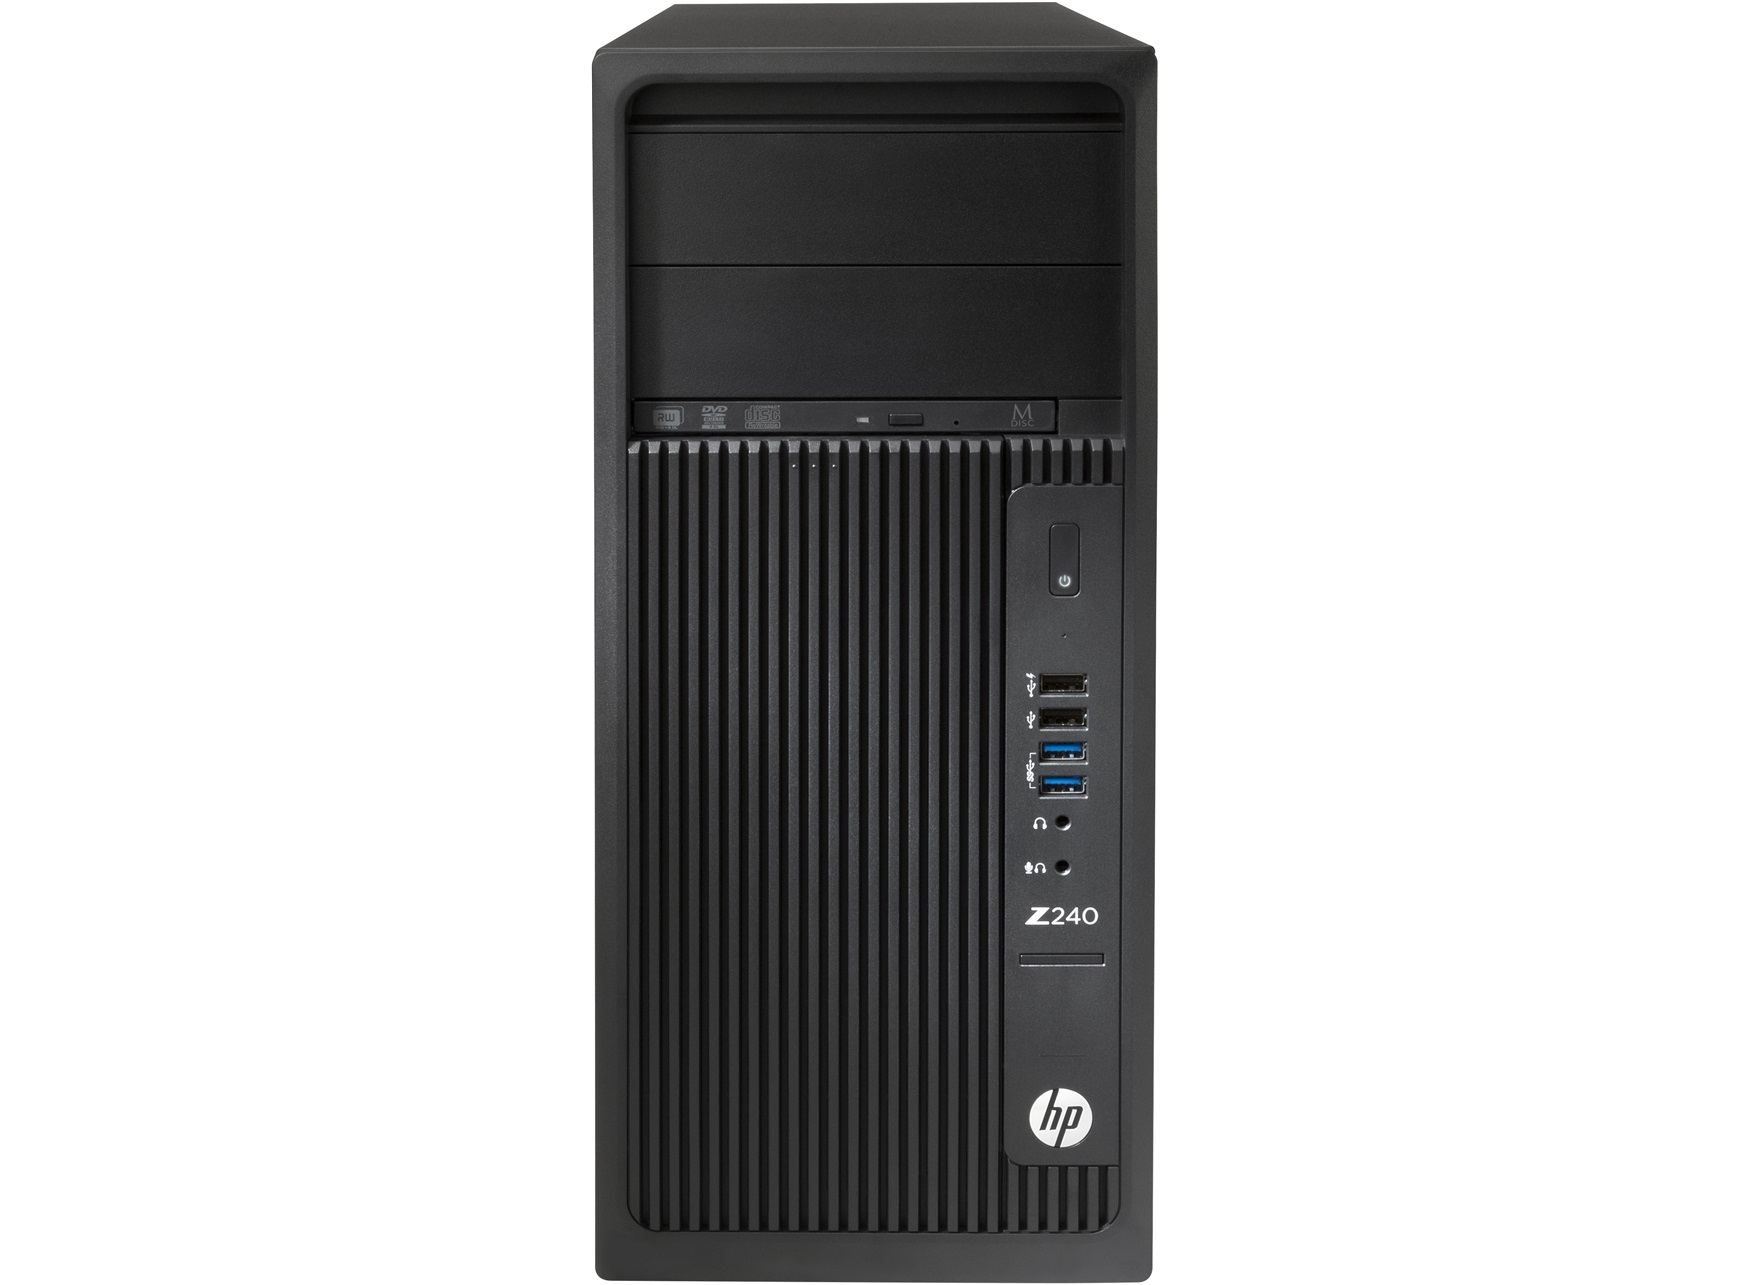 HP Z240 TWR Intel i7-7700 3.6GHz/ 16GB DDR4-2400 nECC (2x8GB)/512GB MLC m.2/Intel HD GFX 630/Win 10 Pro